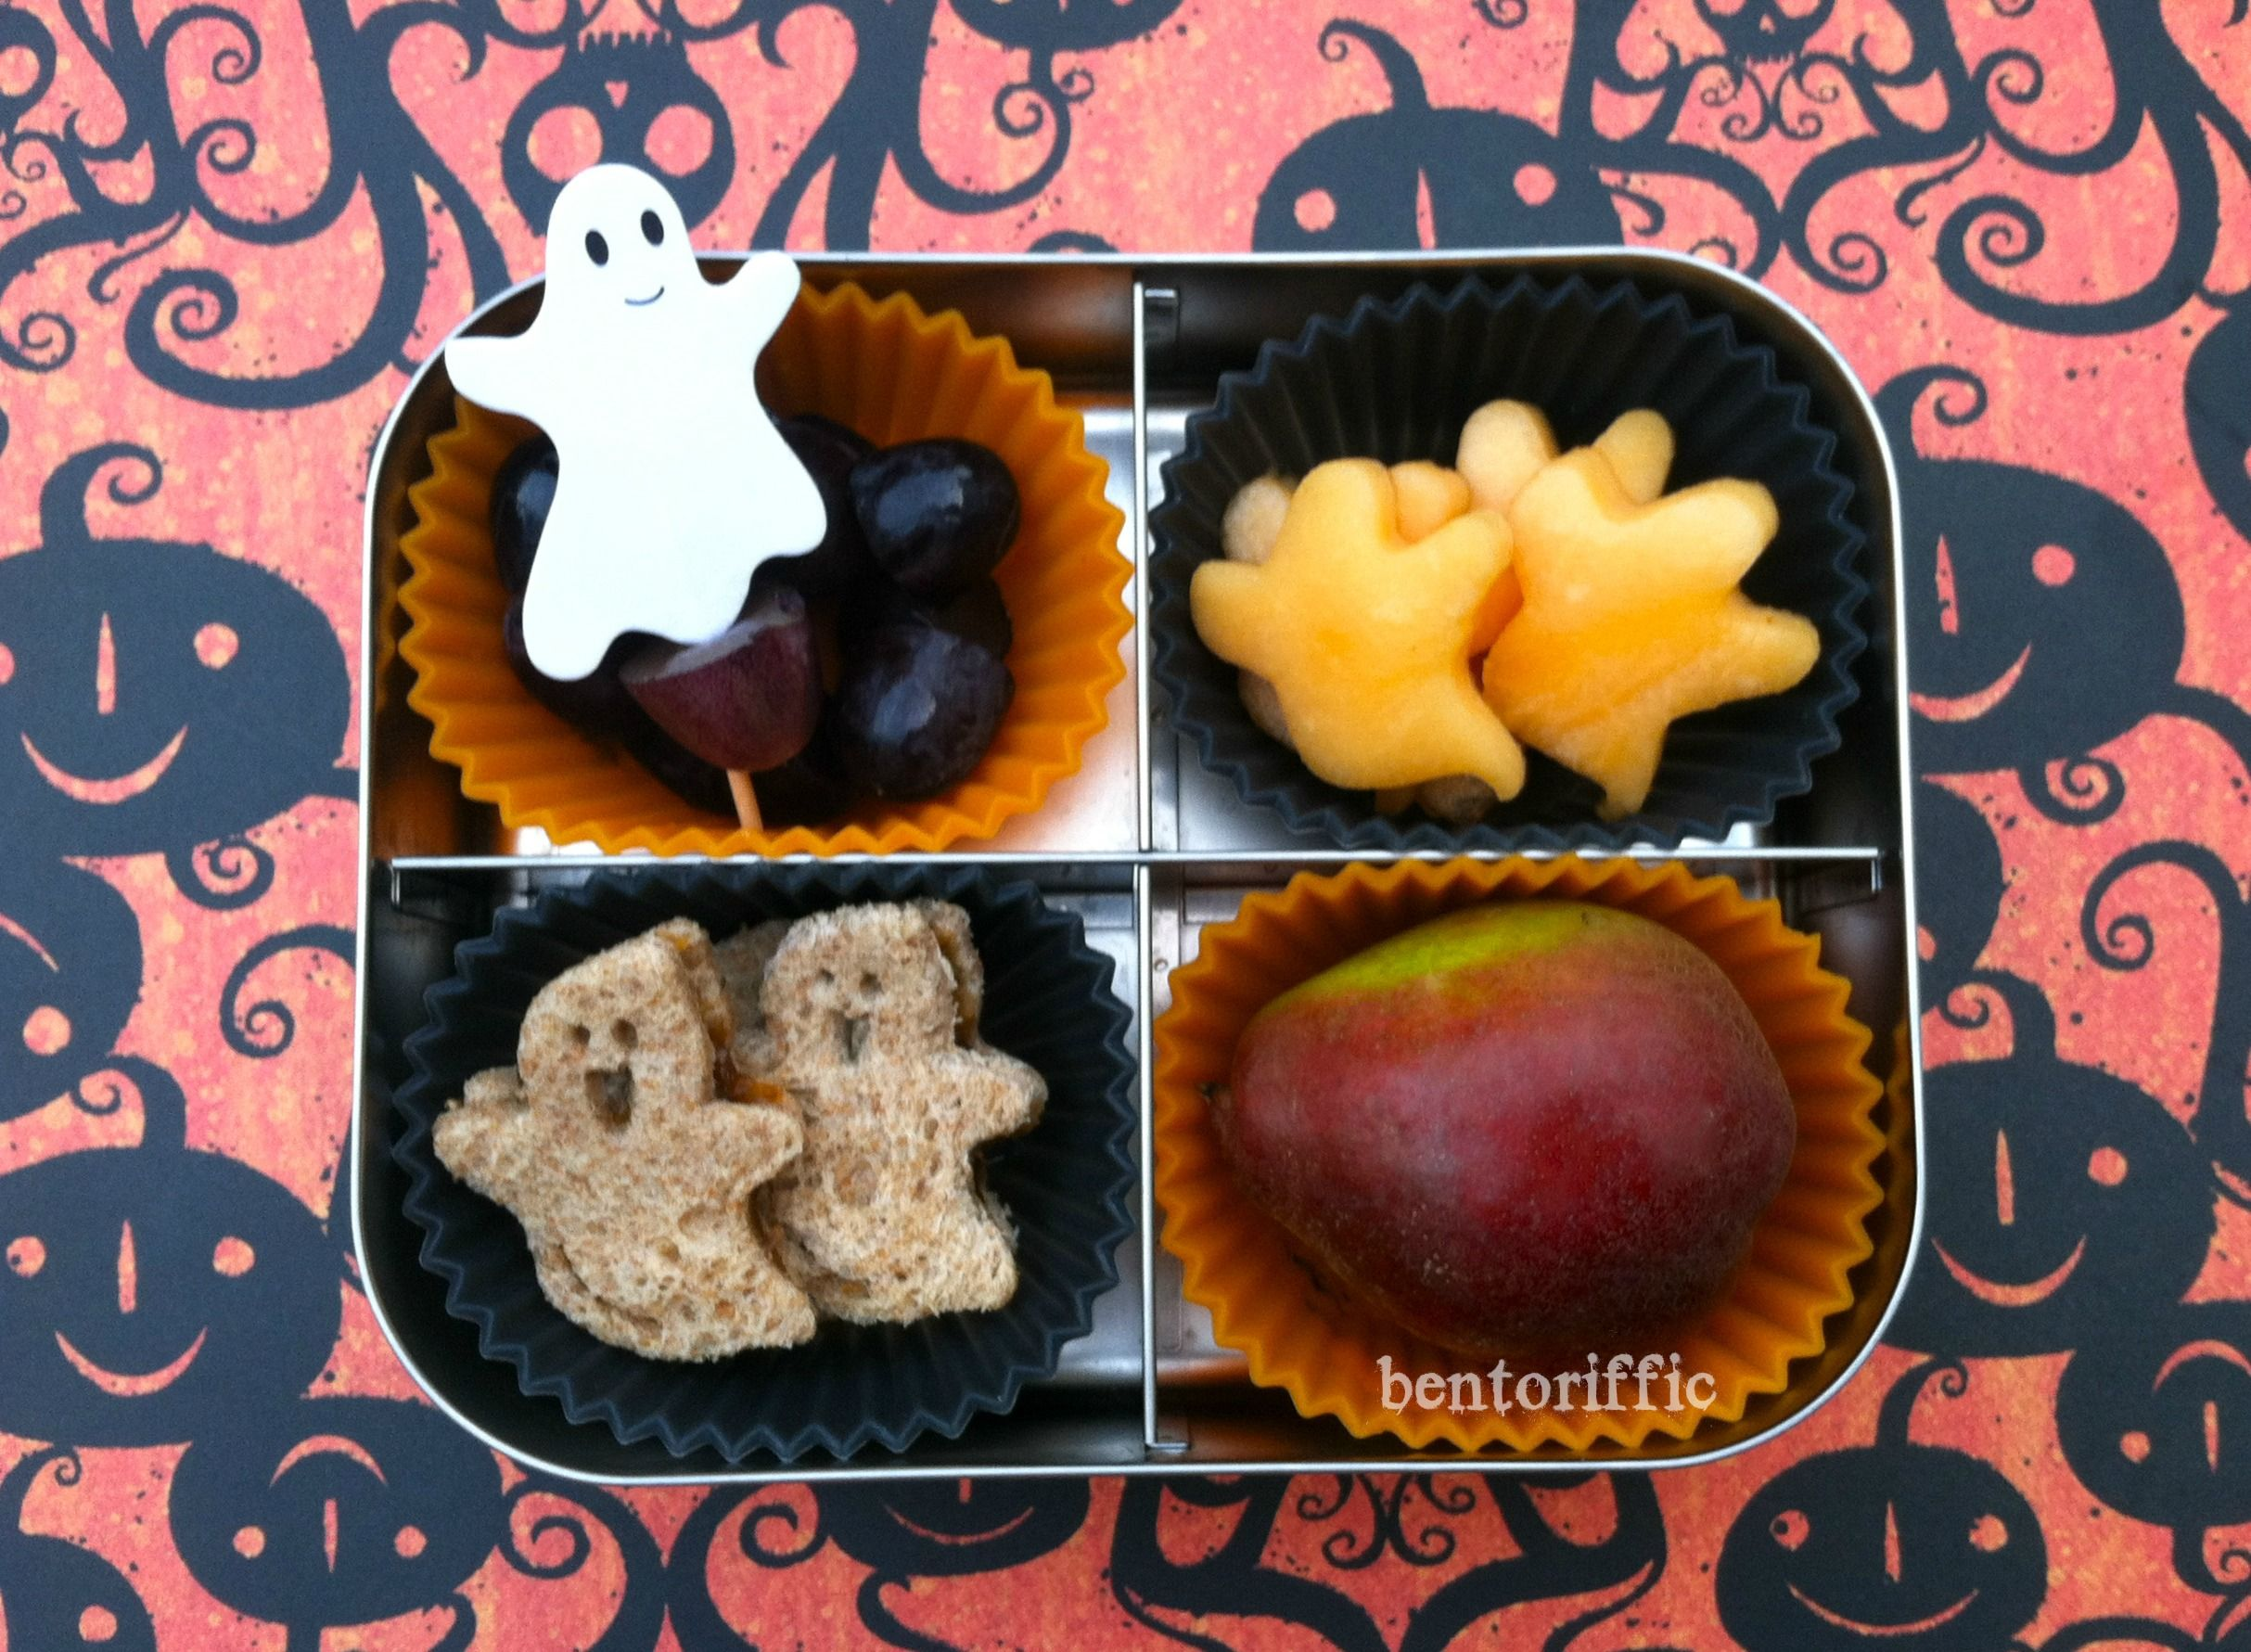 Happy ghost halloween lunch in lunchbots by bento bentoriffic plant happy ghost halloween lunch in lunchbots by bento bentoriffic plant based vegan lunchbox halloween ideashalloween partylunch forumfinder Gallery